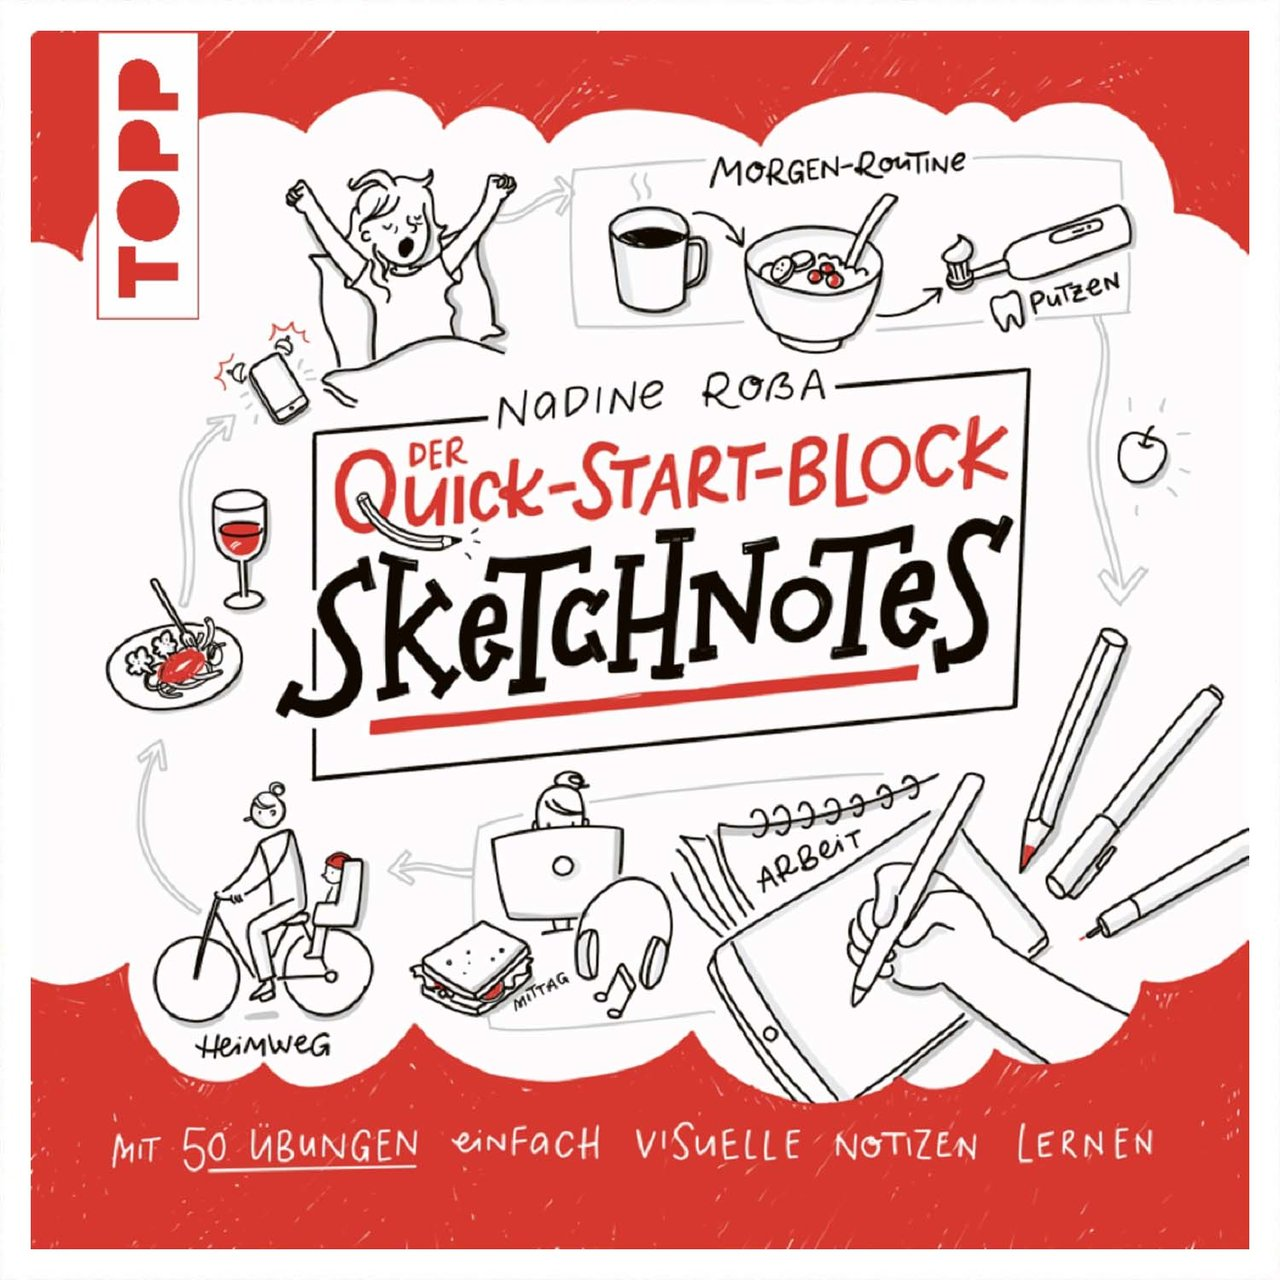 TOPP Sketchnotes Quicks-Start-Block von TOPP